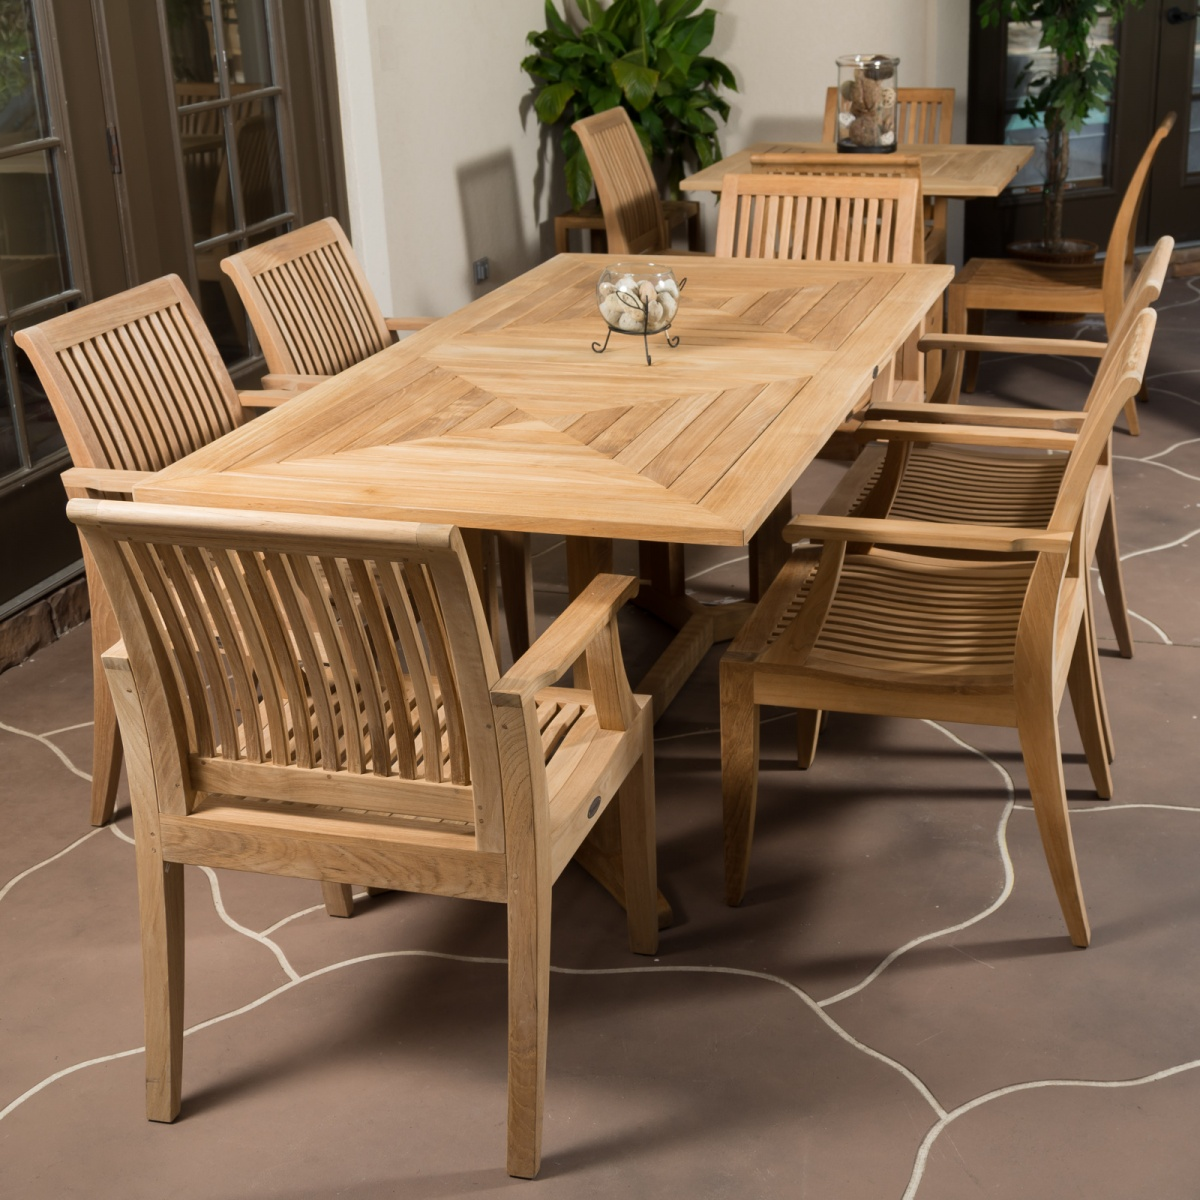 Large teak dining set for 12 people westminster teak for 12 person dining table for sale